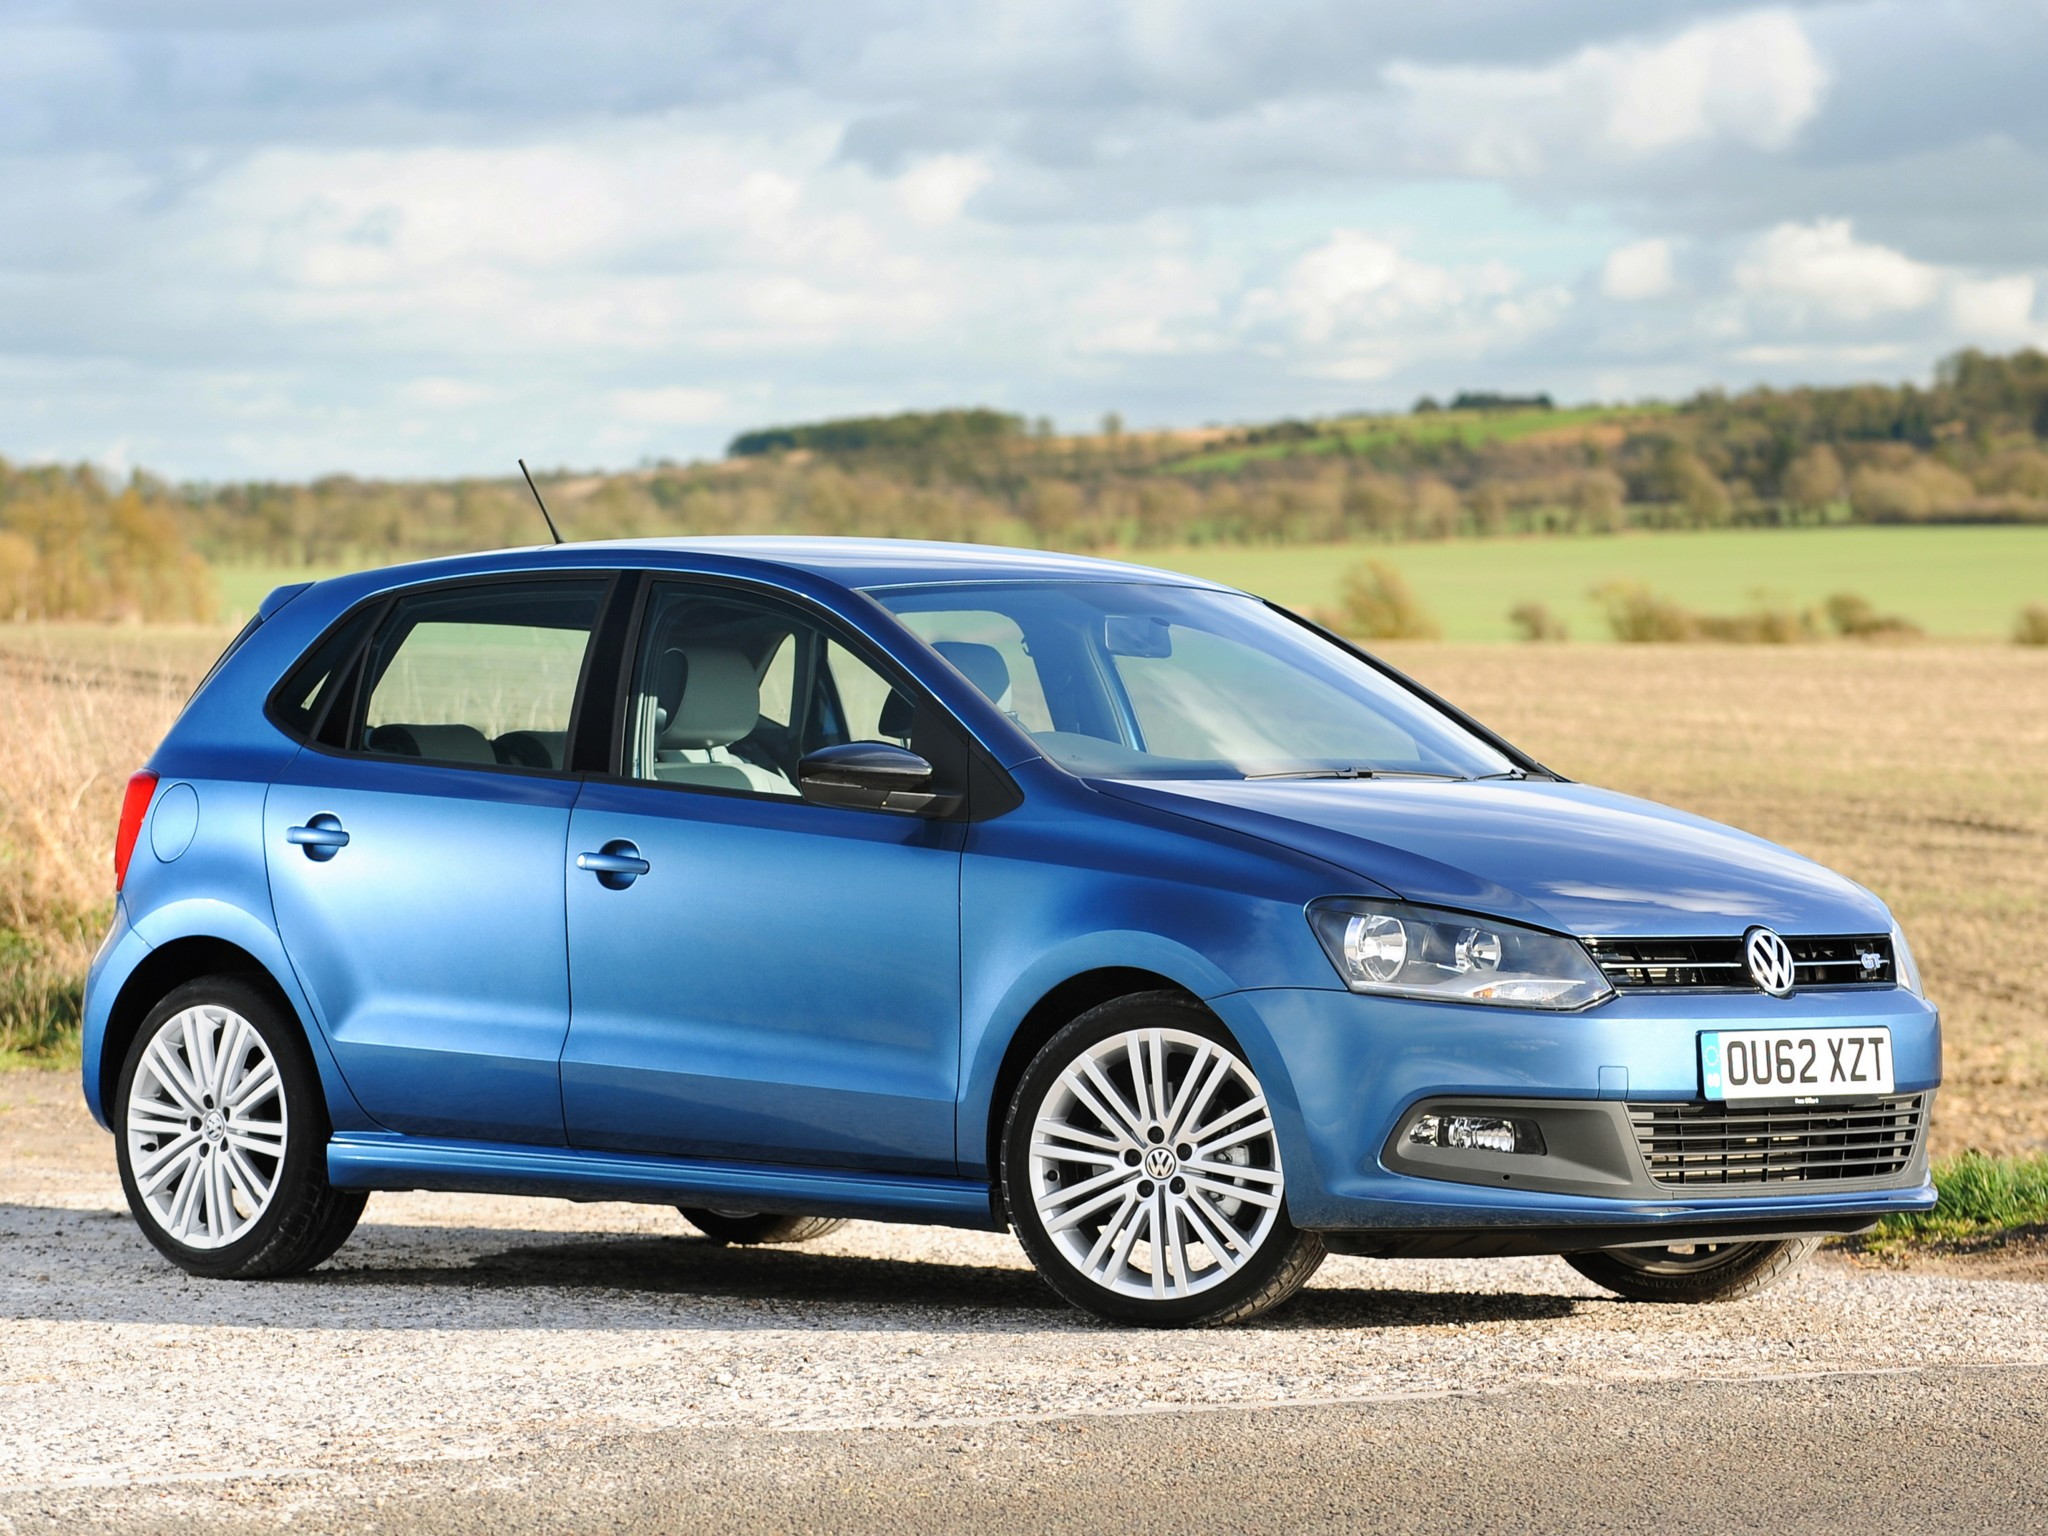 New Polo Bluegt 150 Hp Fuel Sipper Goes On In Europe Volkswagen